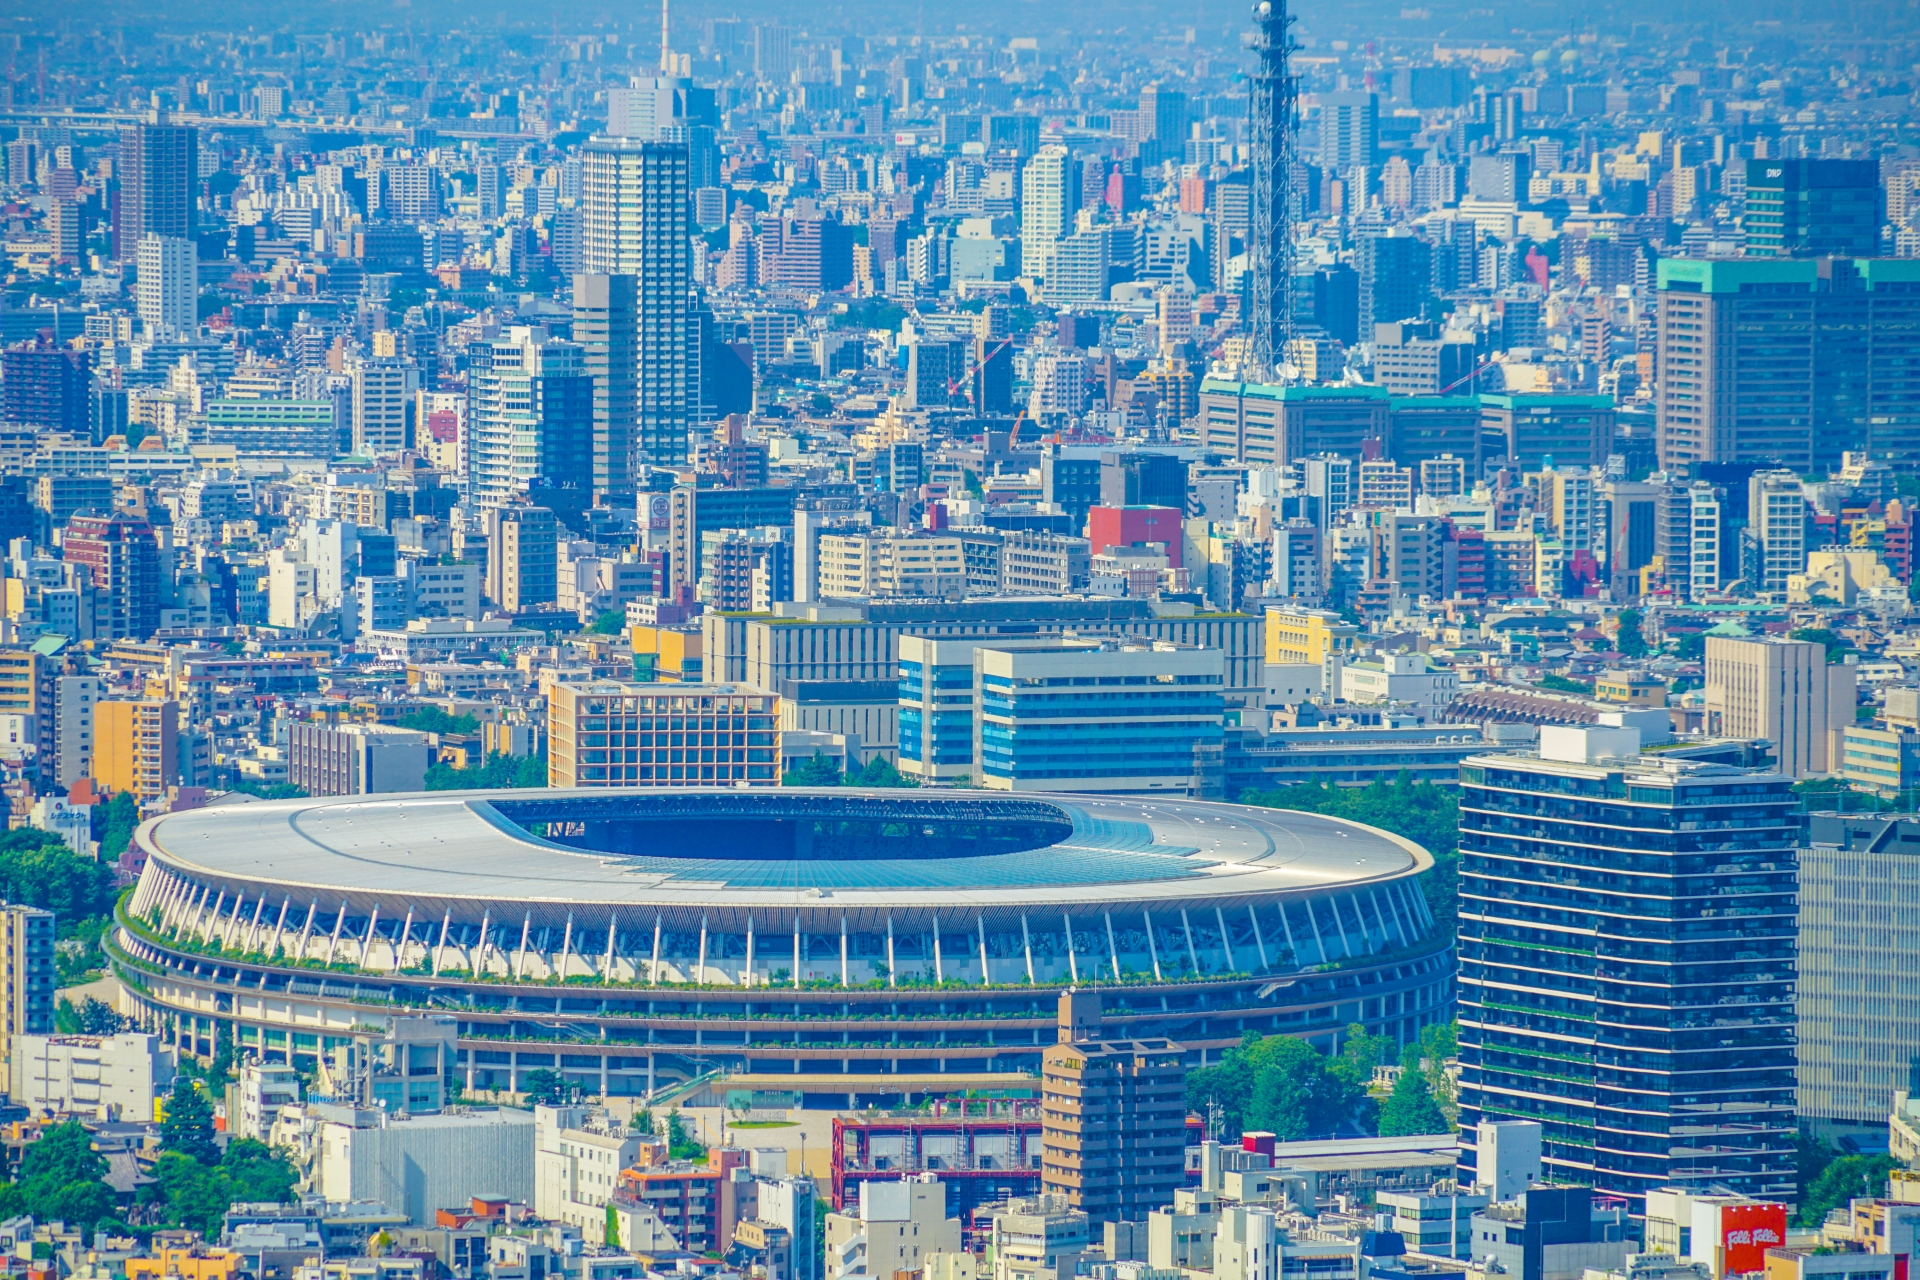 Tokyo 2020: Traveling in Japan During the Olympics & COVID-19